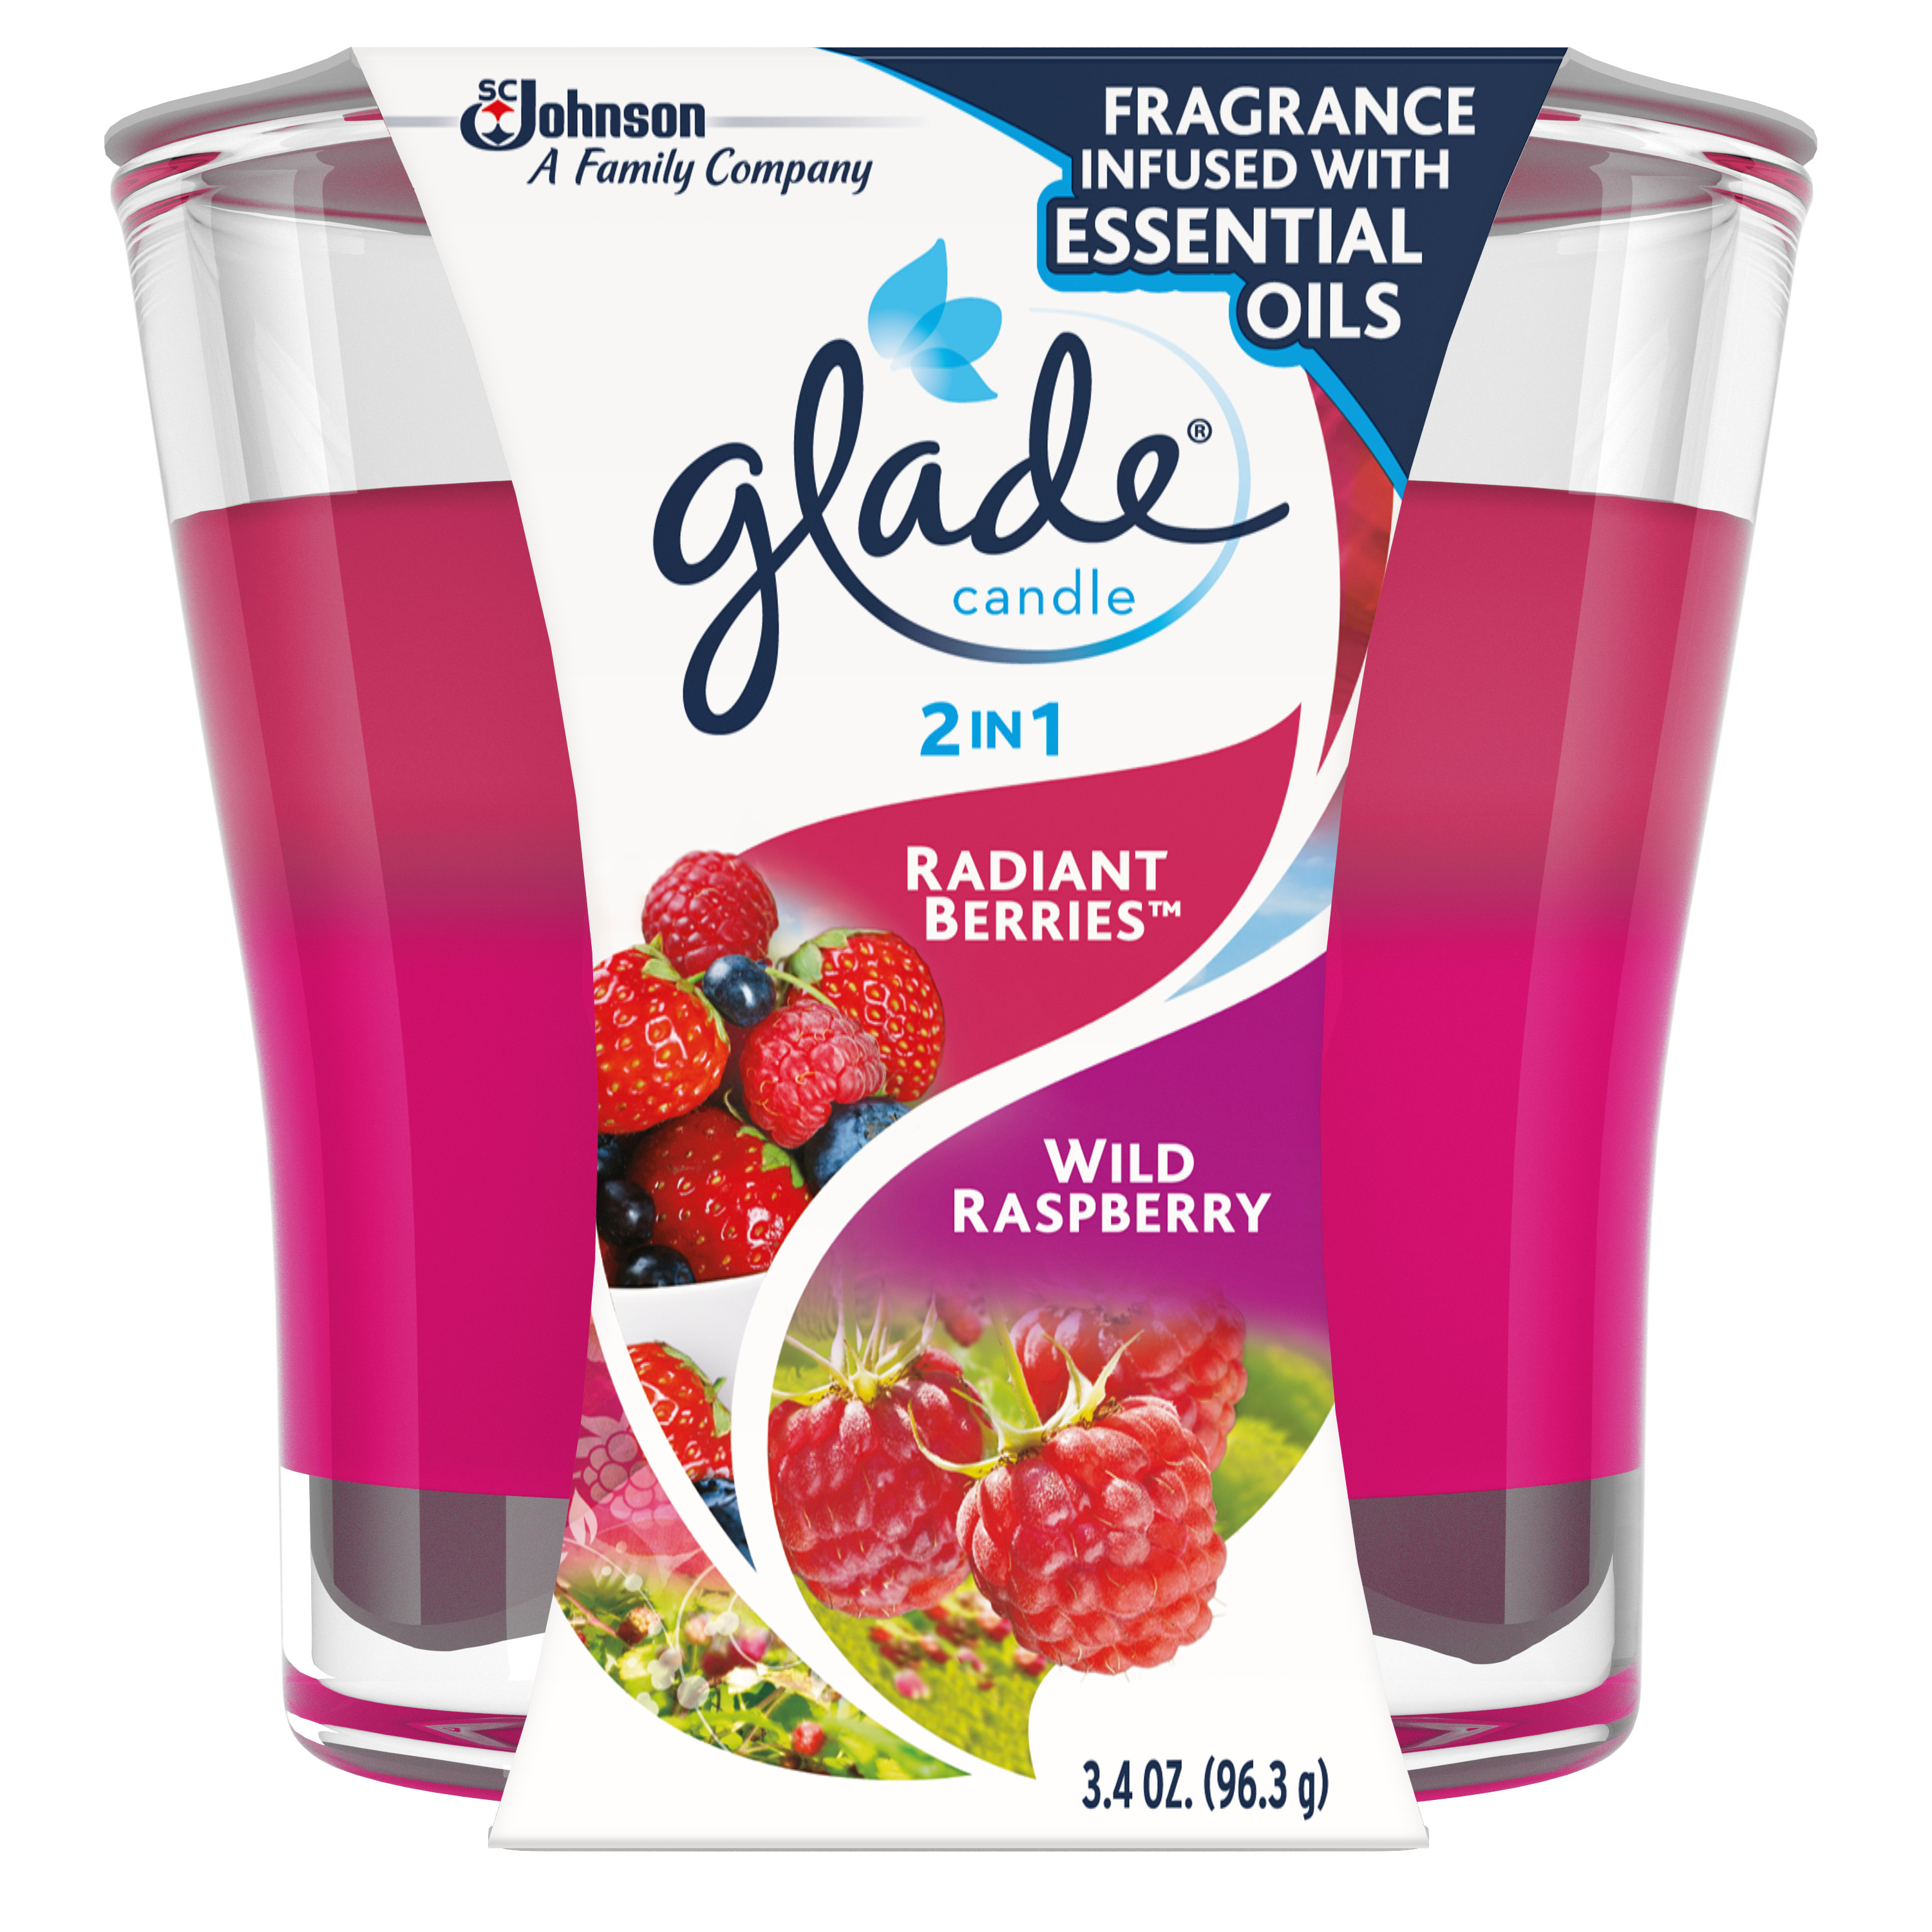 Glade Candle, 2 in 1: Radiant Berries & Wild Raspberries, 3.4 oz.